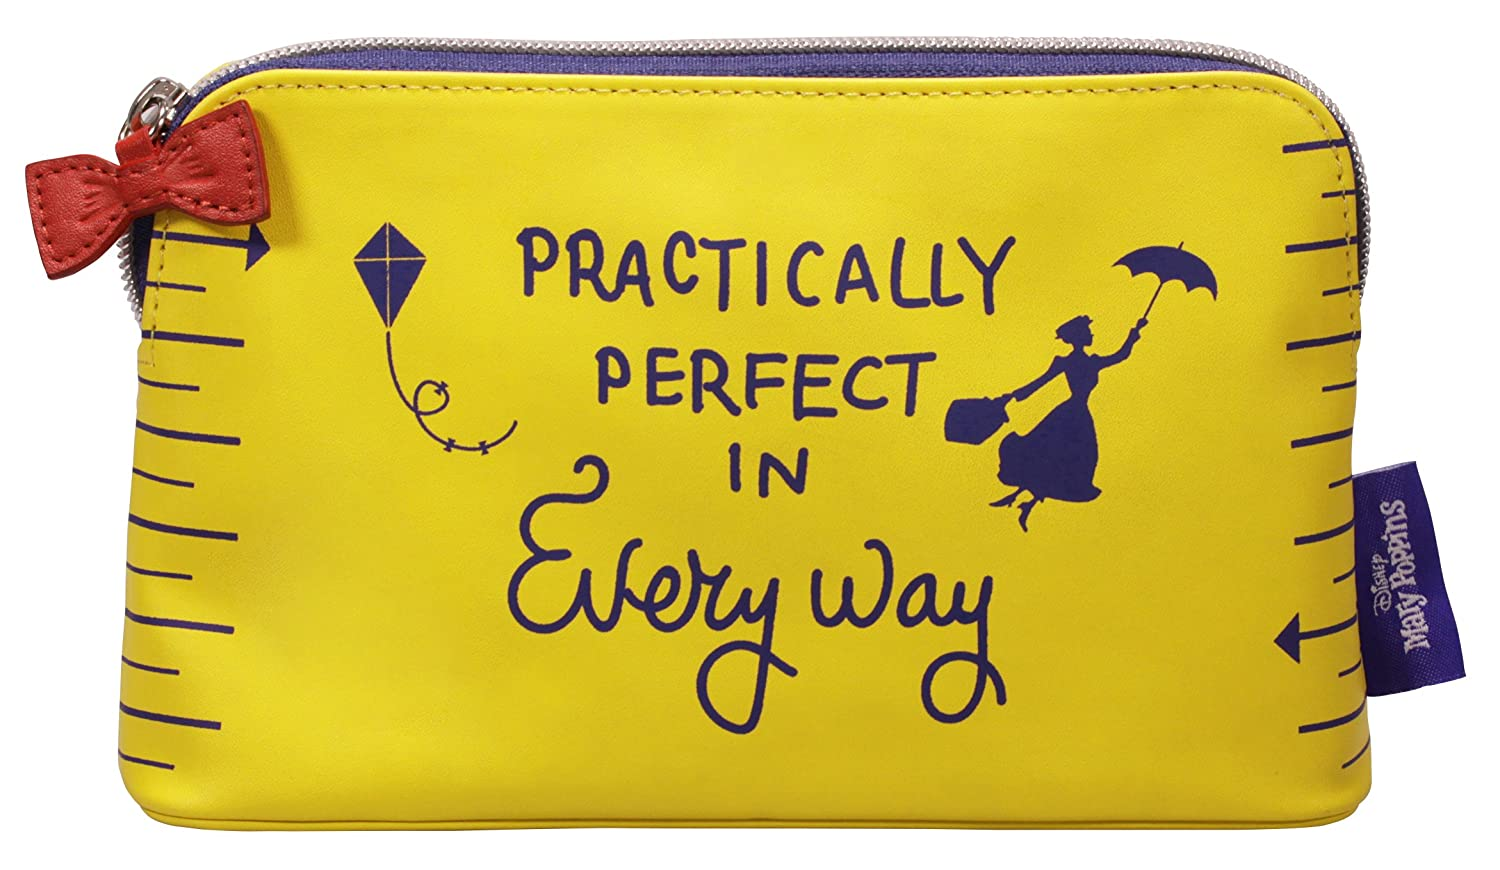 Mary Poppins Cosmetic Bag - Practically Perfect Half Moon Bay